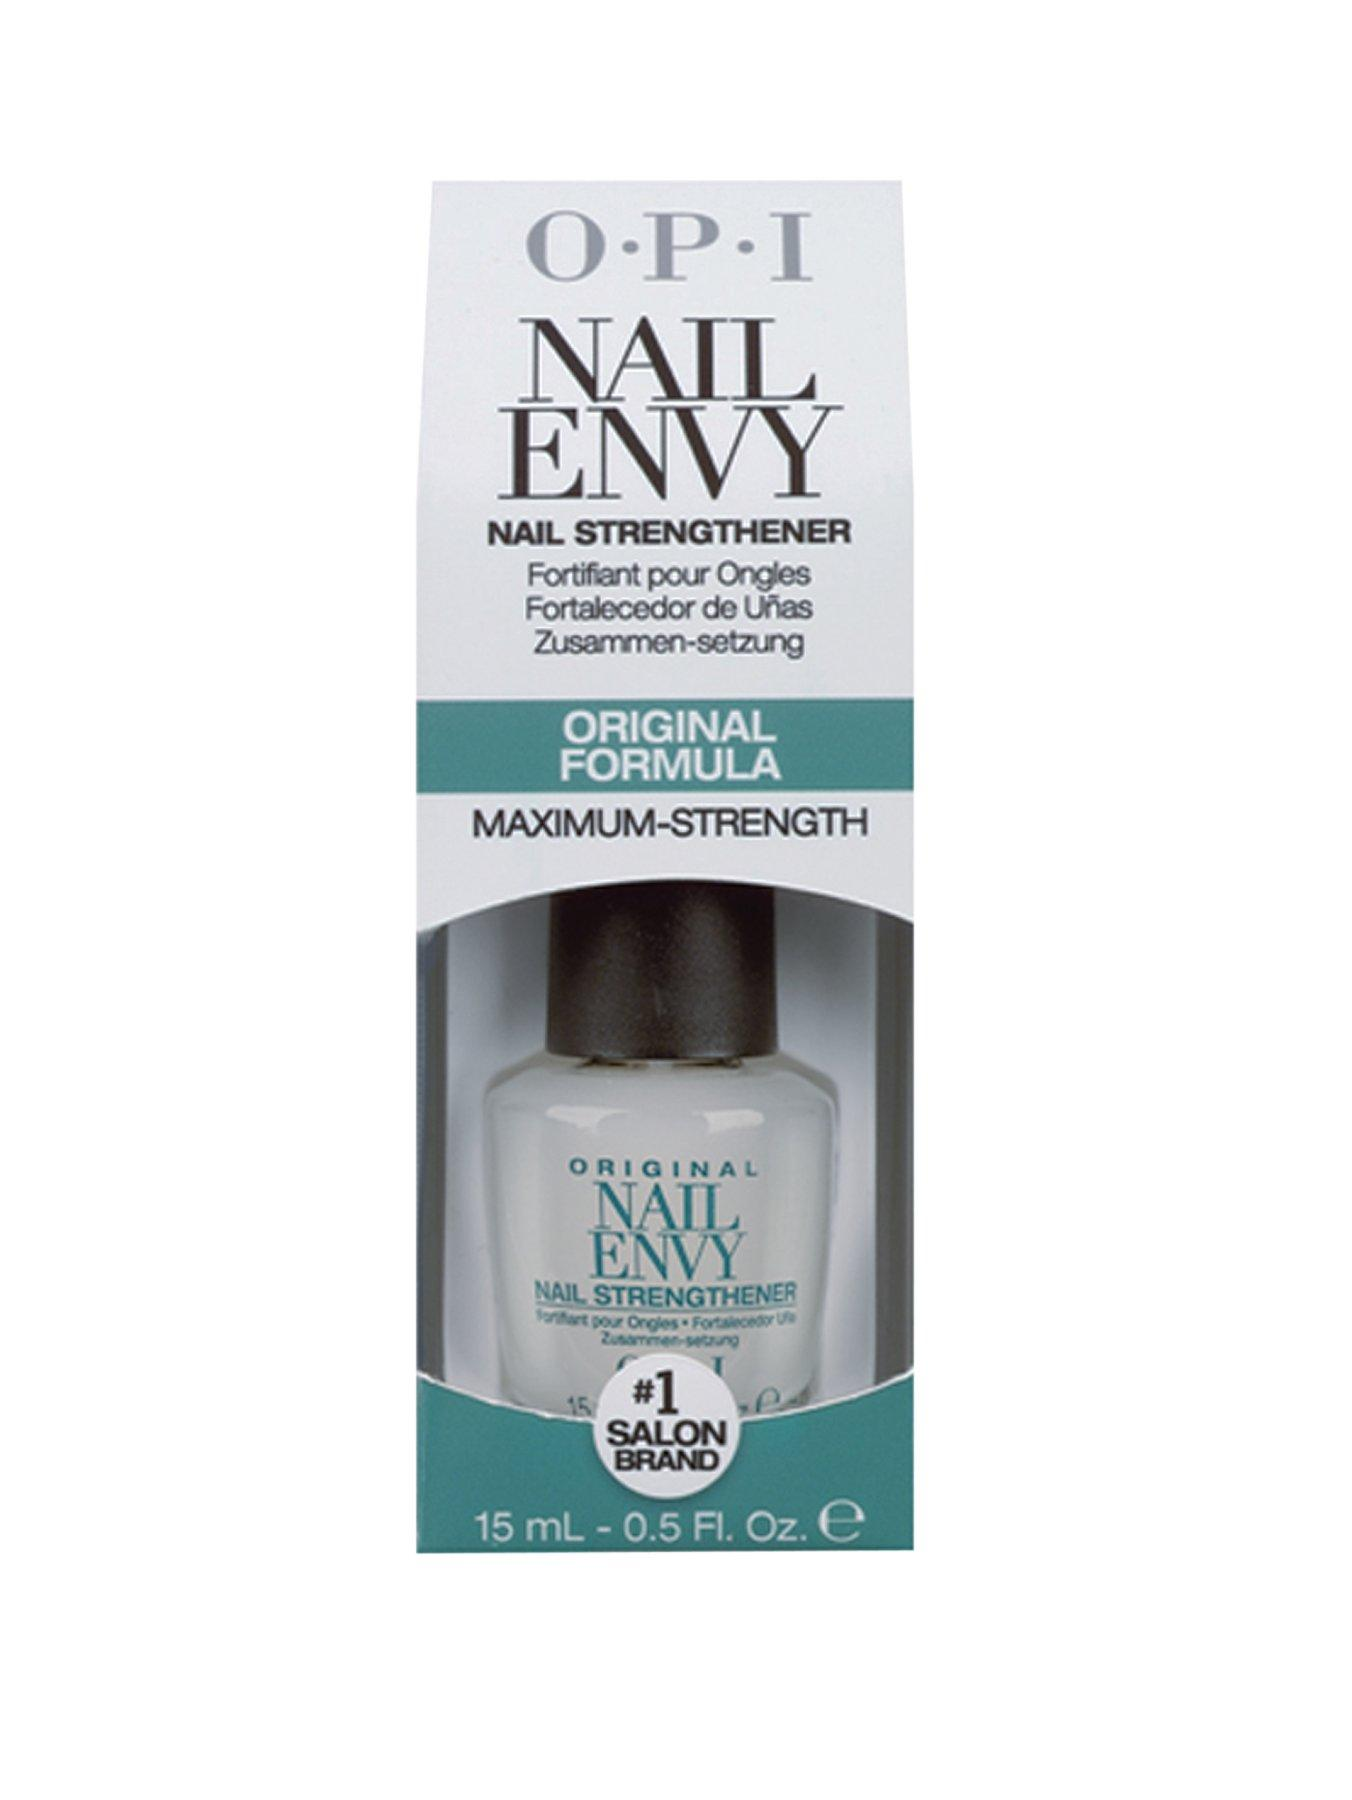 OPI Nail Polish - Nail Envy Original 15ml